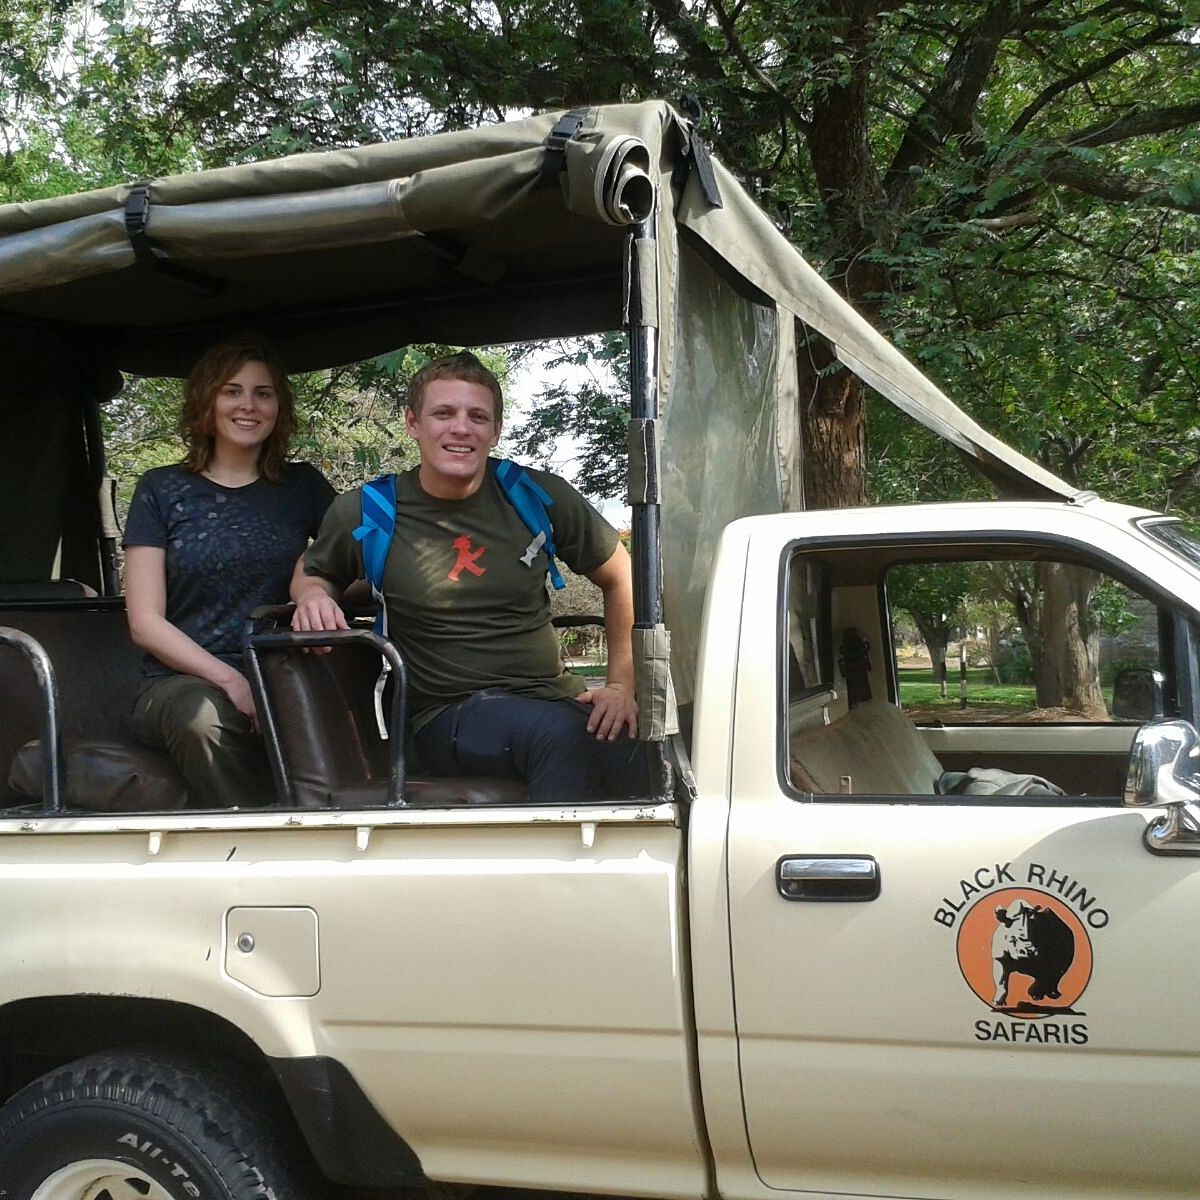 Guests departing on a Day Trip to Matopos to track Rhino and see the stunning Matopos hills and its rock formations, Bulawayo, Zimbabwe.